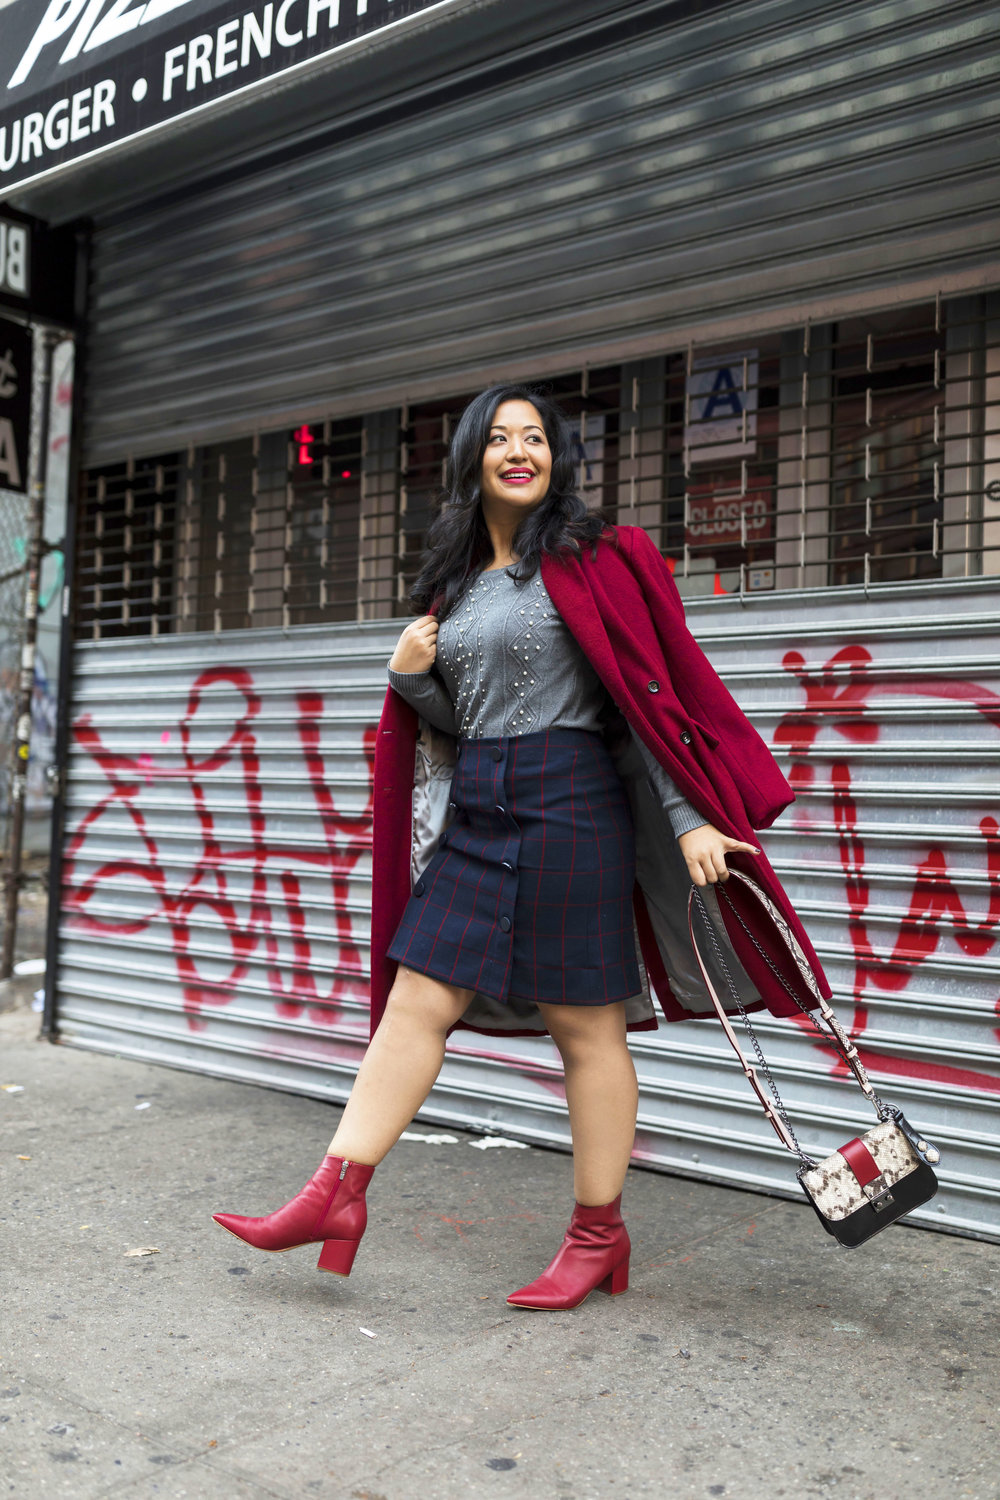 Krity S x Preppy Fall Outfit x Red Coat8.jpg